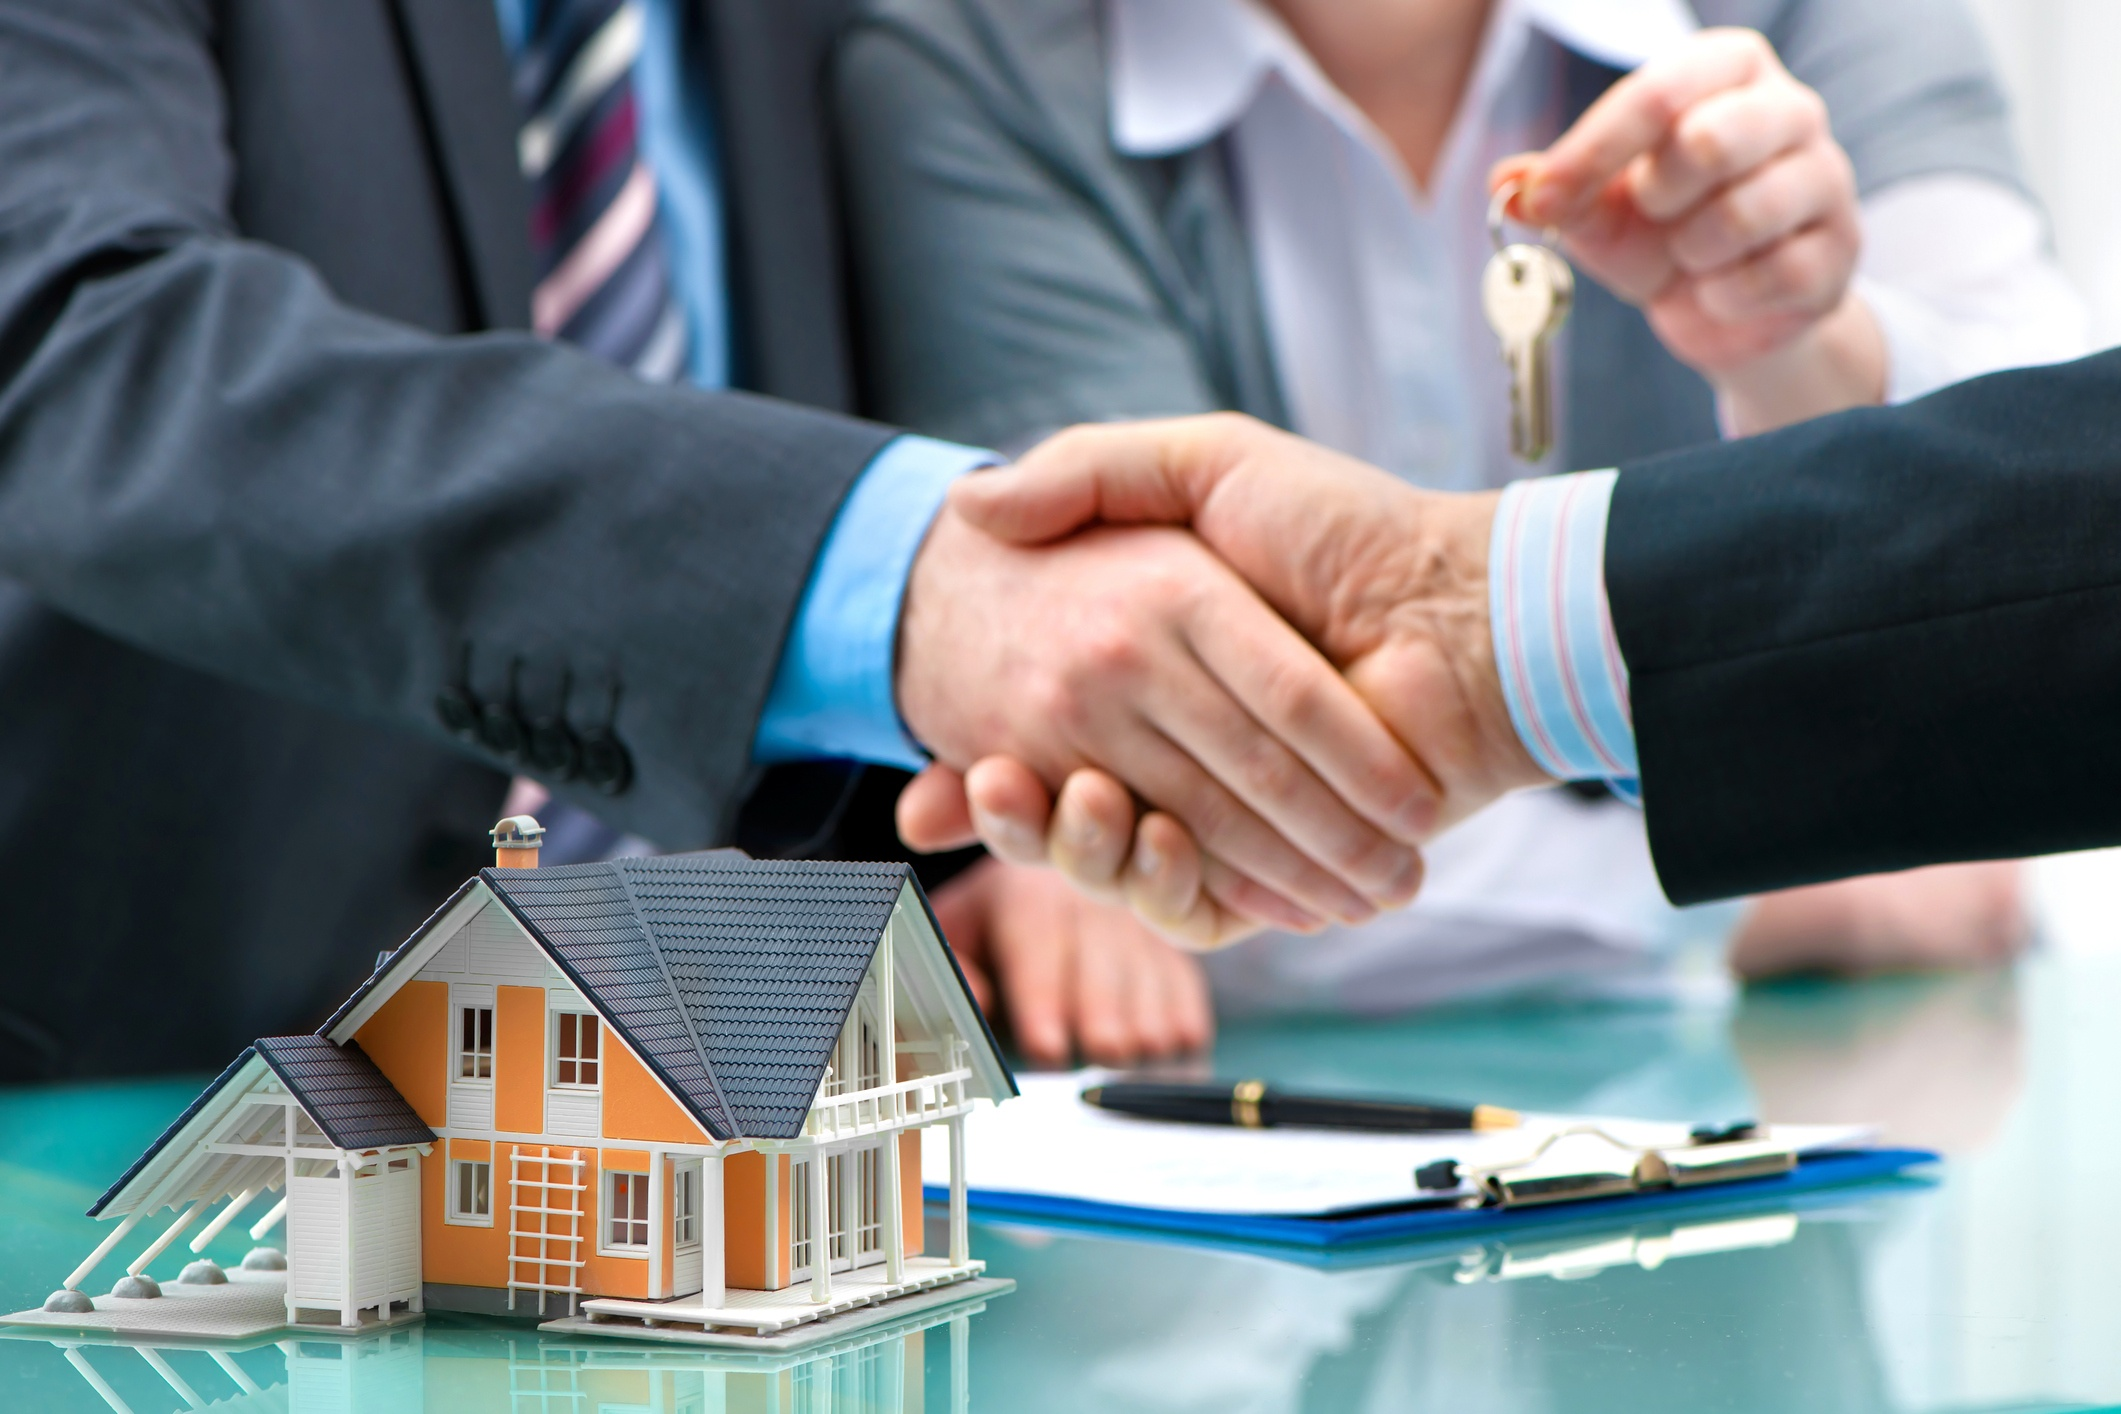 Home Buyer Negotiating - The Turwitt Team